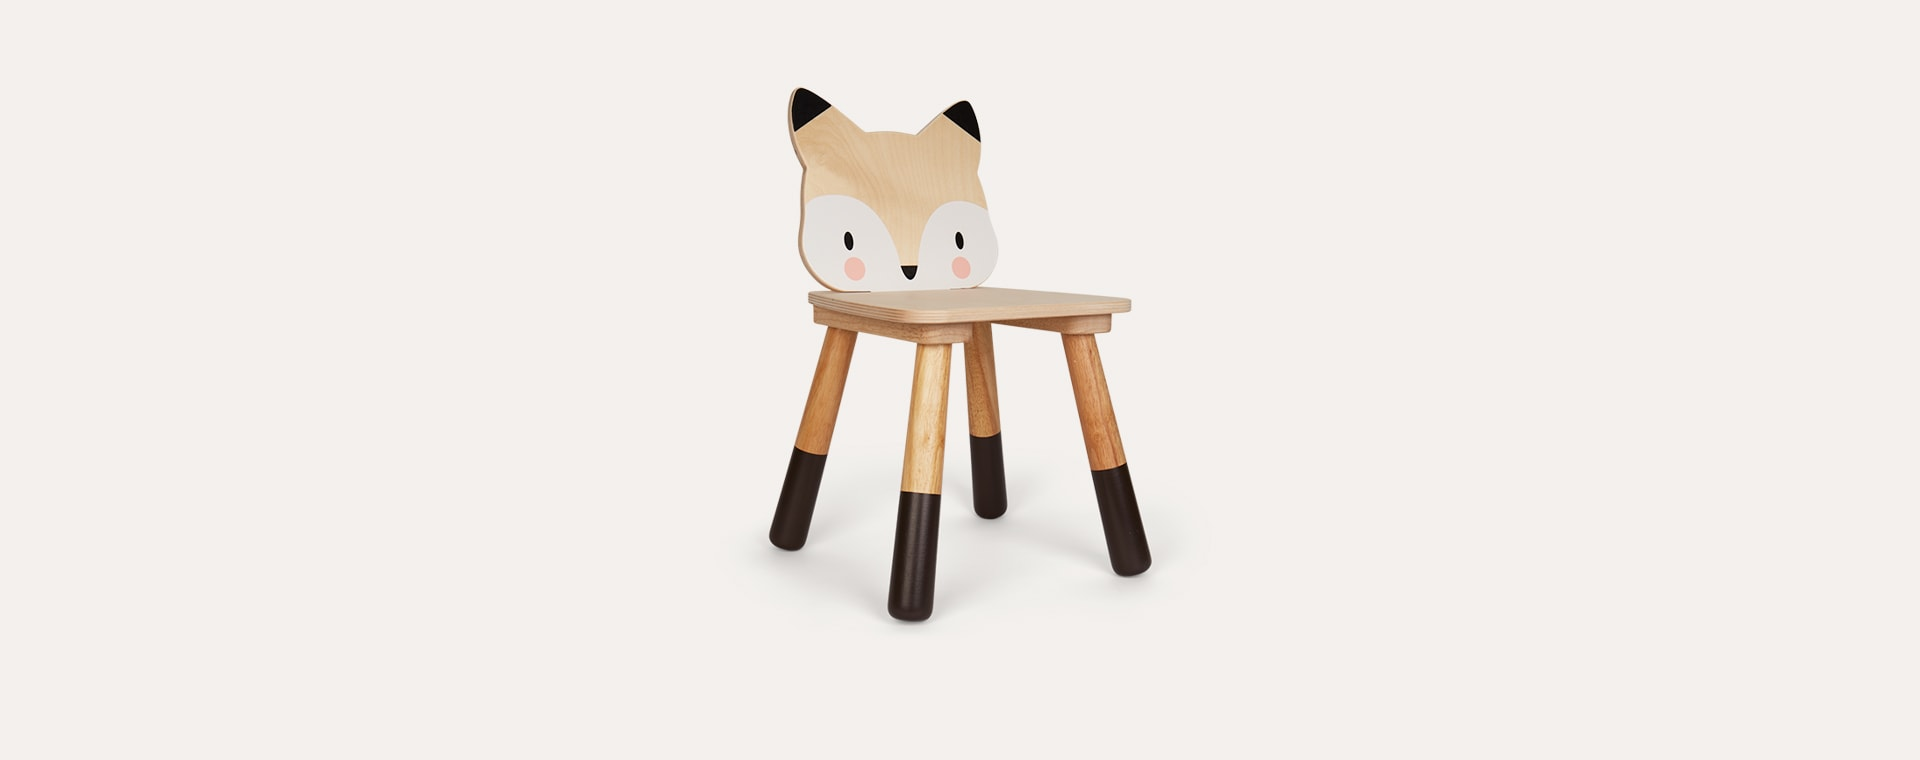 Fox Tender Leaf Toys Forest Chair